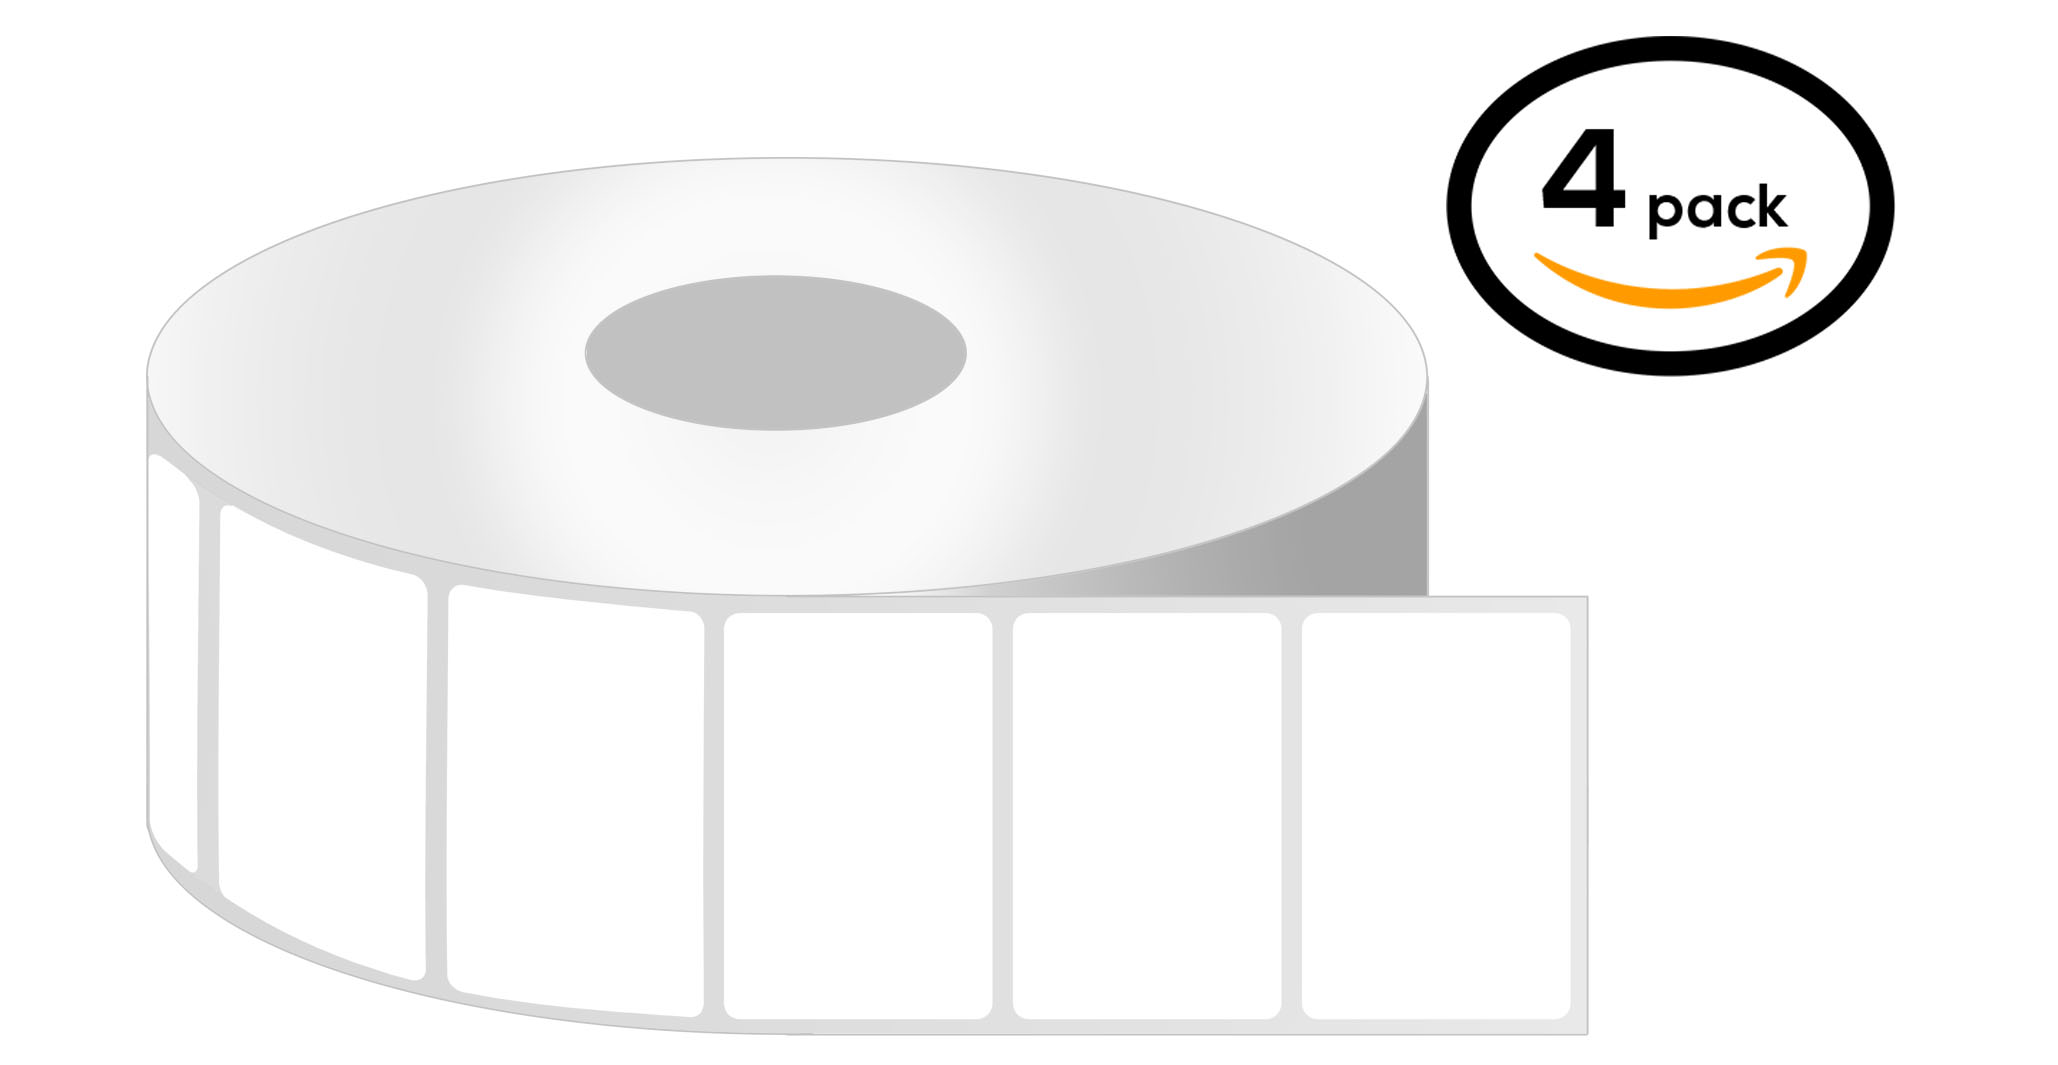 3 Inch Core - 2 x 1 Zebra Compatible Direct Thermal Labels 1 Roll